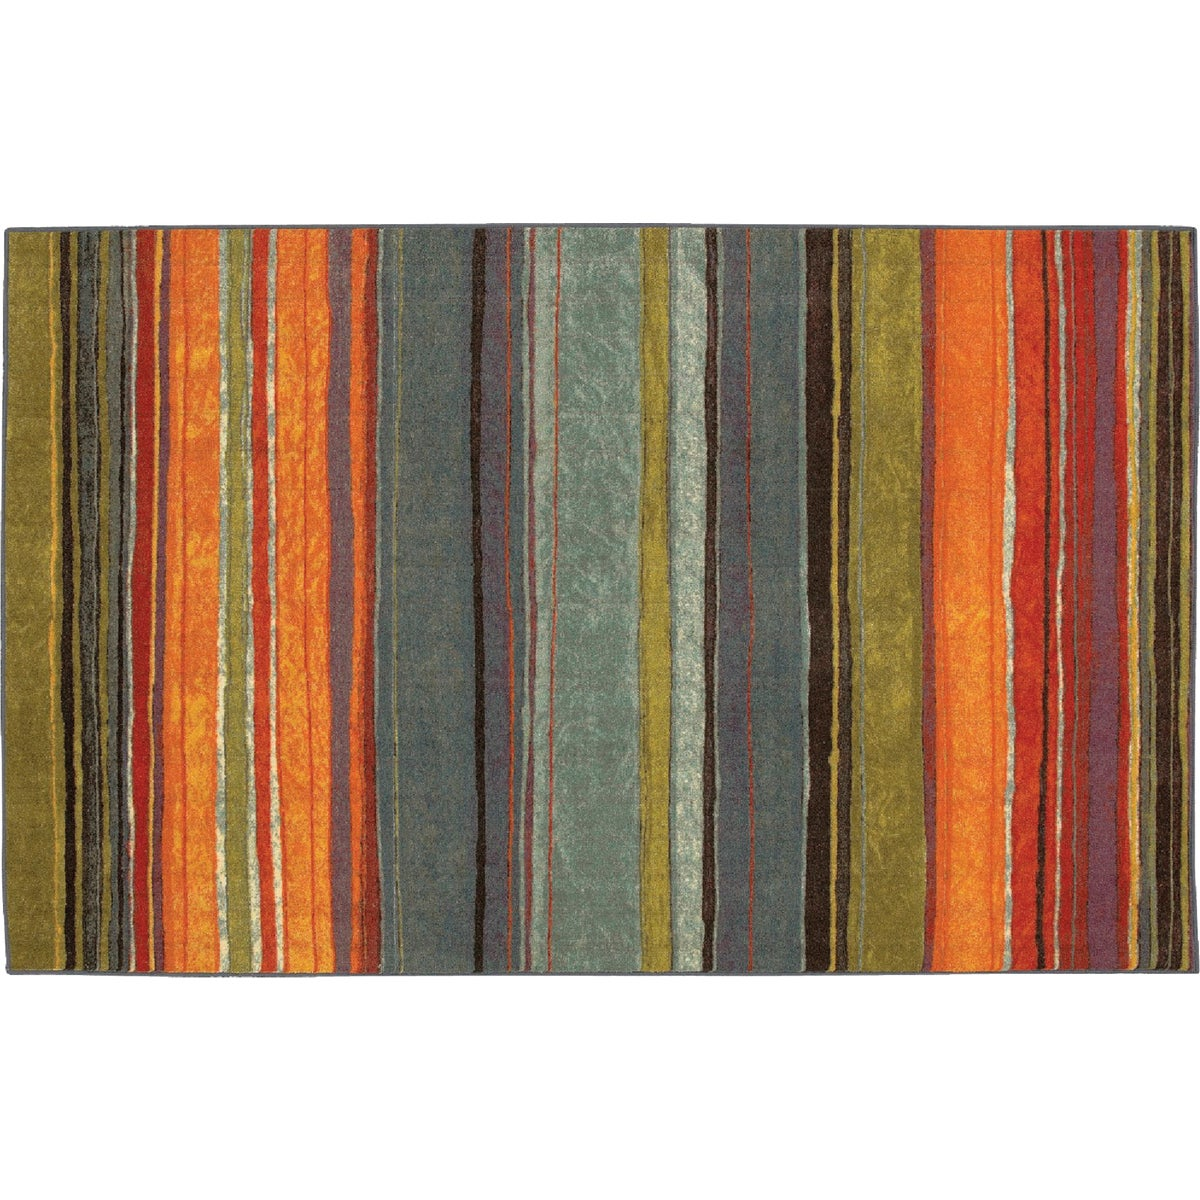 20X34 RAINBOW PRINT RUG - 10474-416-20034 by Mohawk Home Products